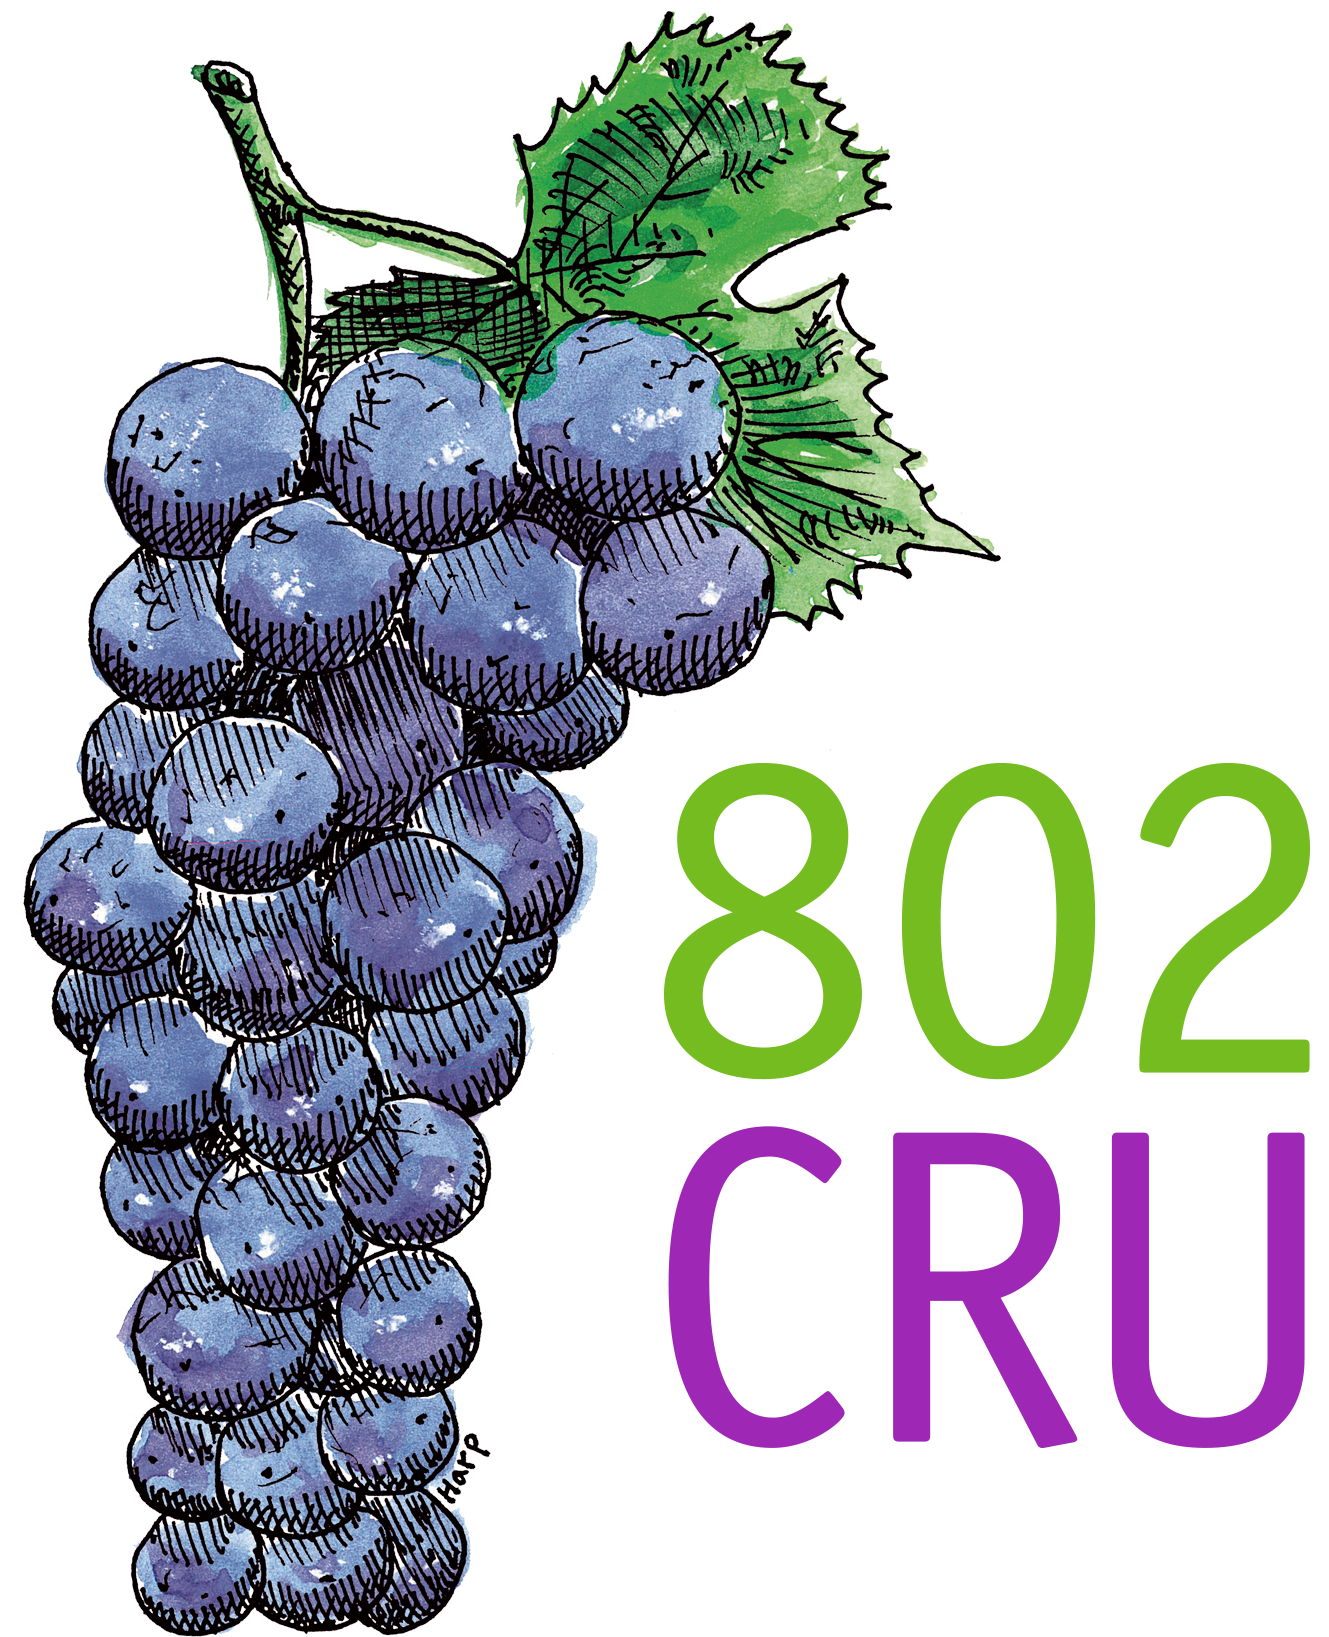 802CRU_stacked_grapes.png